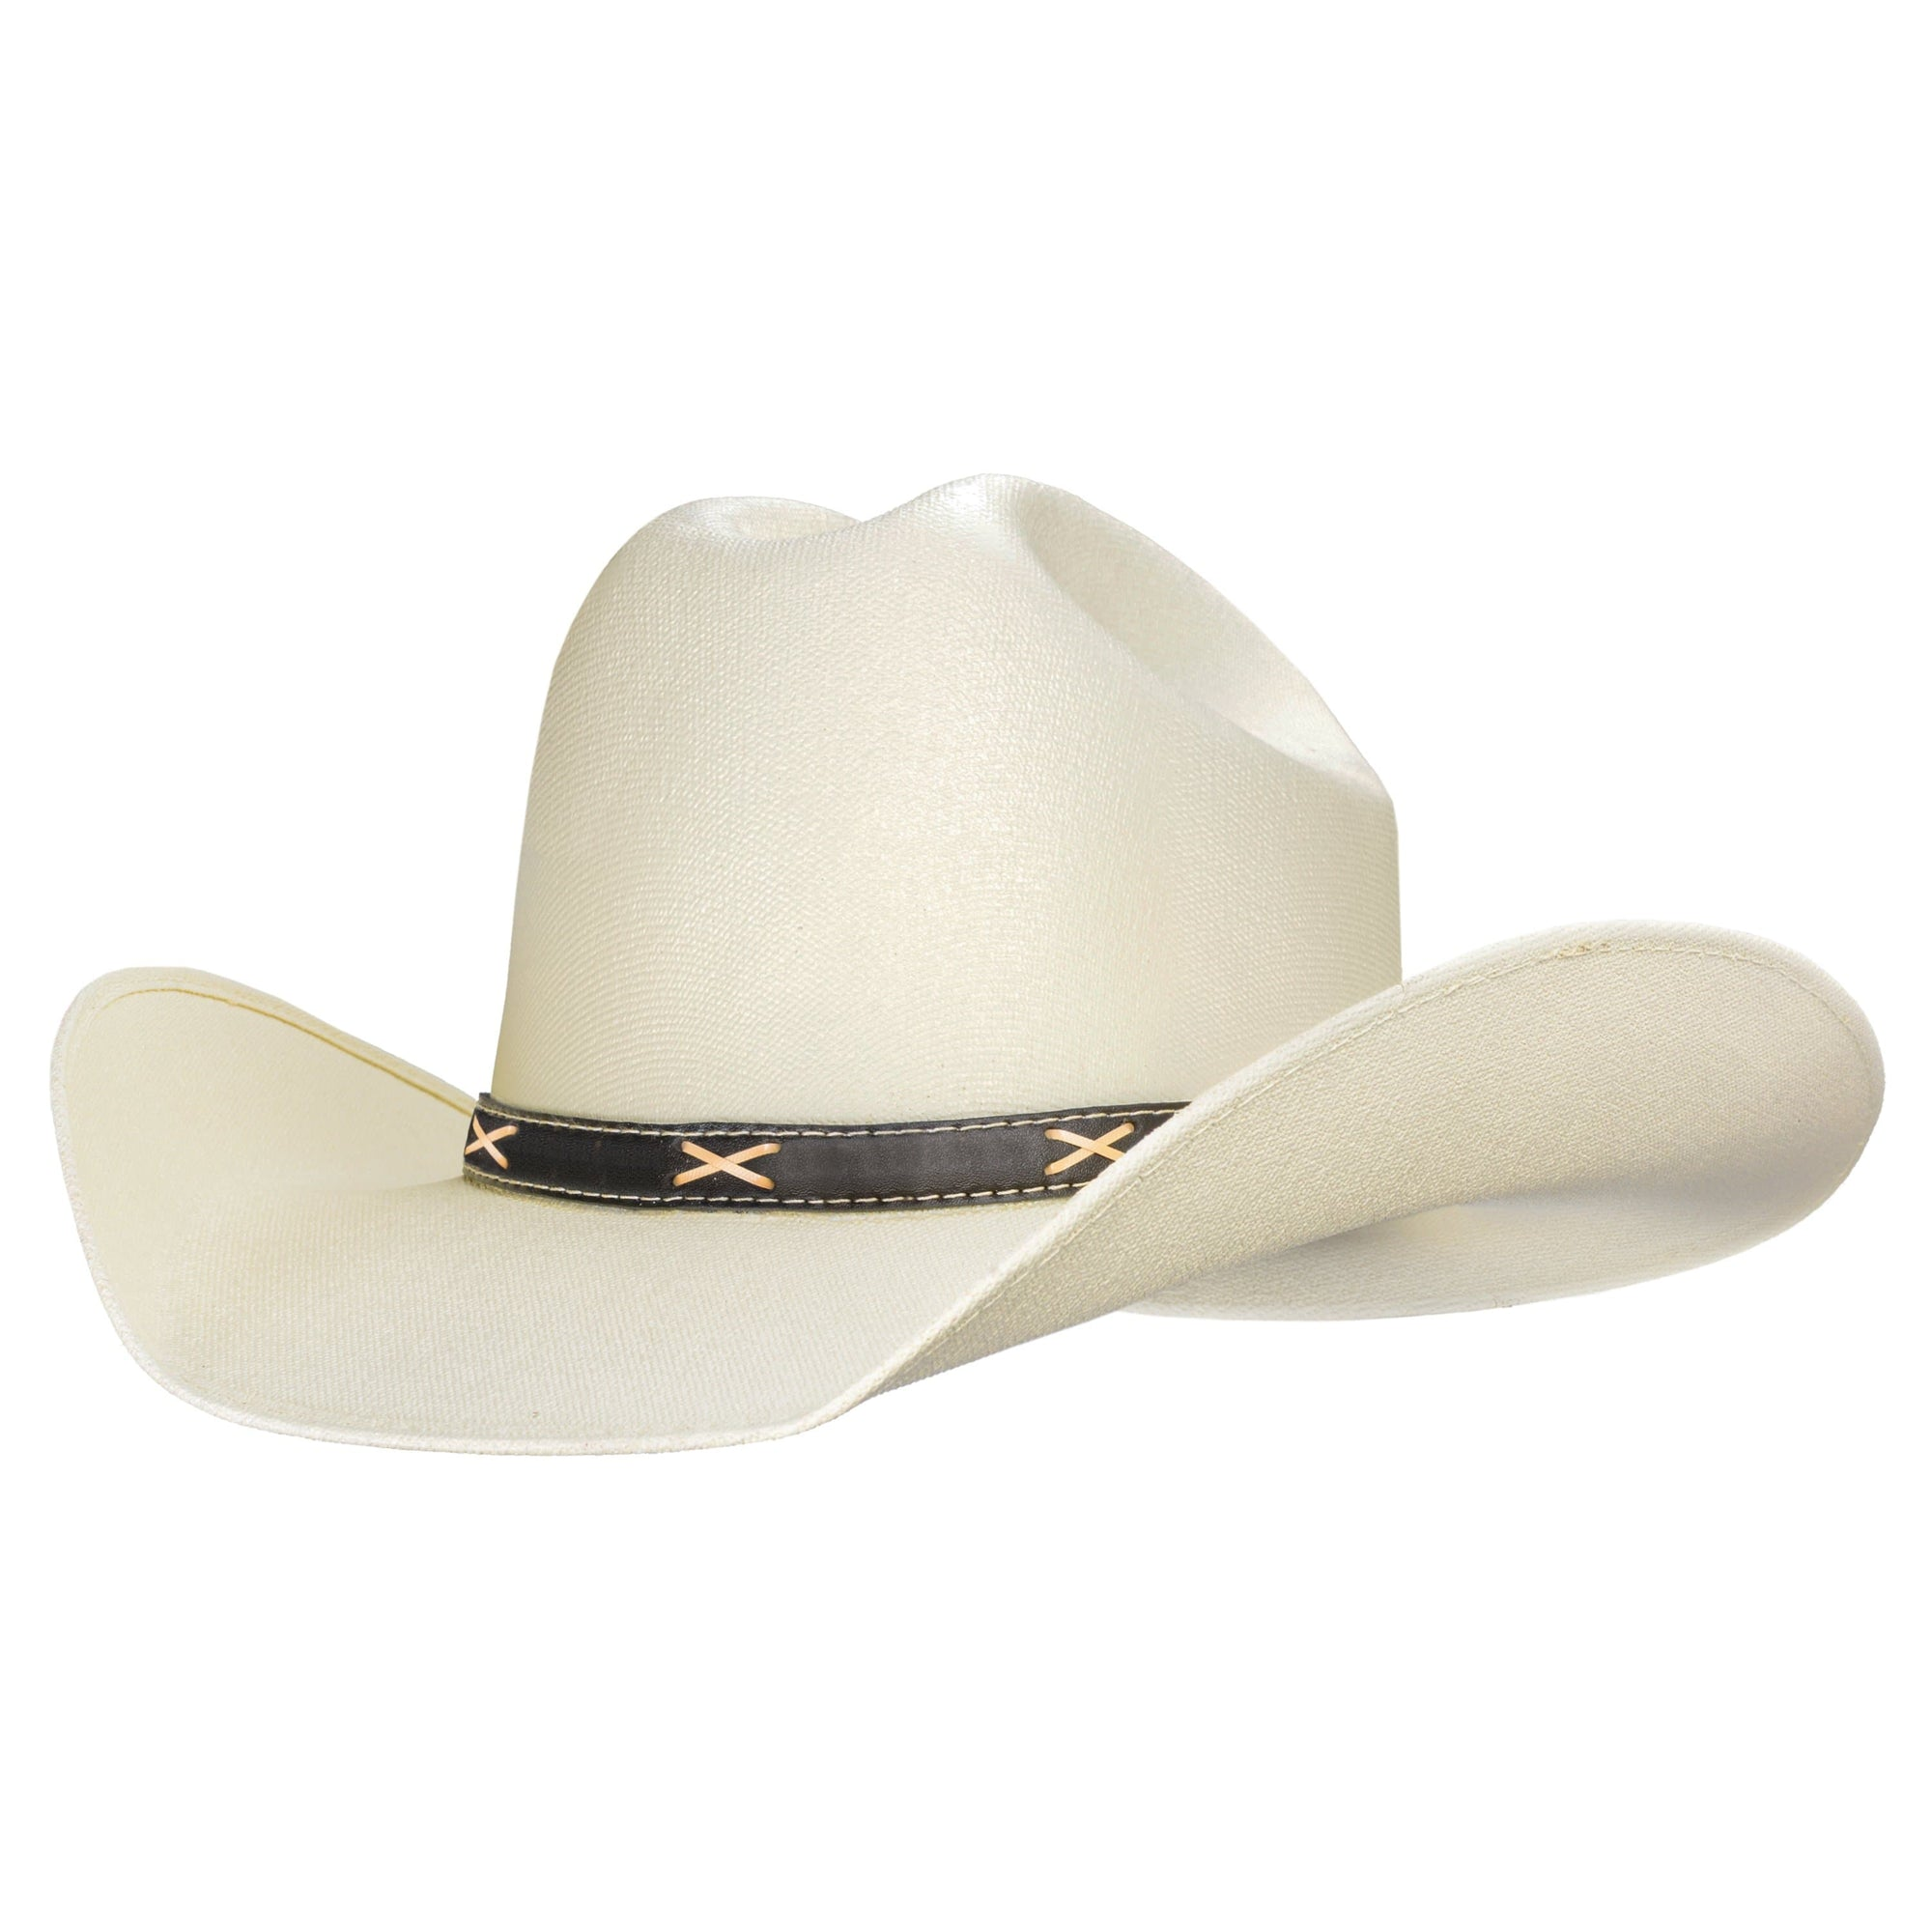 Traditional western cowboy hat style, it is also a country music cowboy hat, similar to Brad Paisley's hat. Clean this good cowboy hat with a spray of Windex.